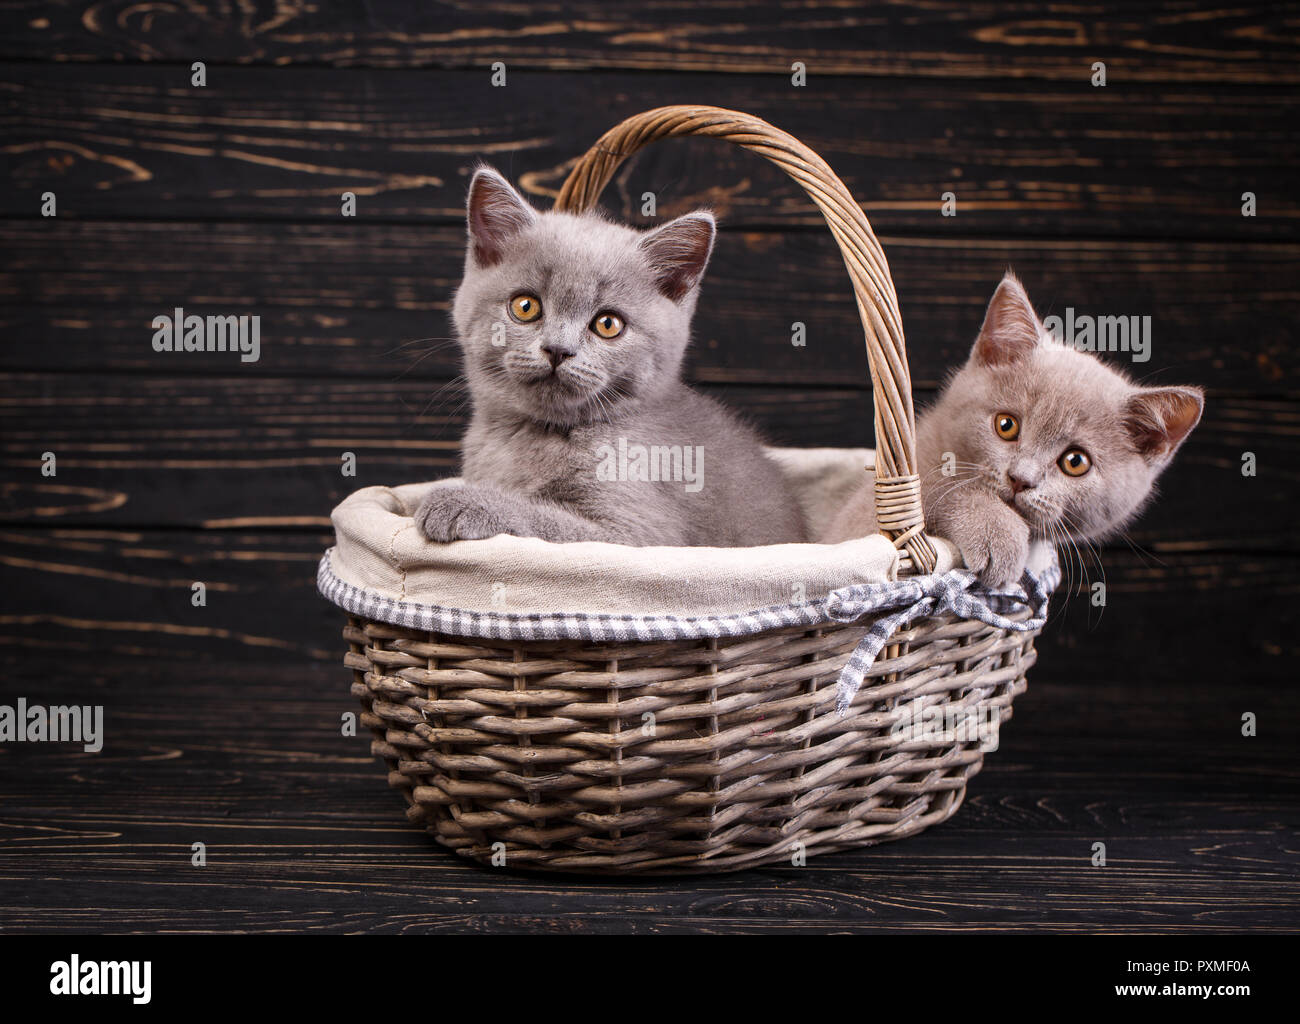 Scottish straight kittens. The cat looks at the camera. Two fluffy kittens are housed in a basket. Funky kittens explore new territories. On a black b - Stock Image